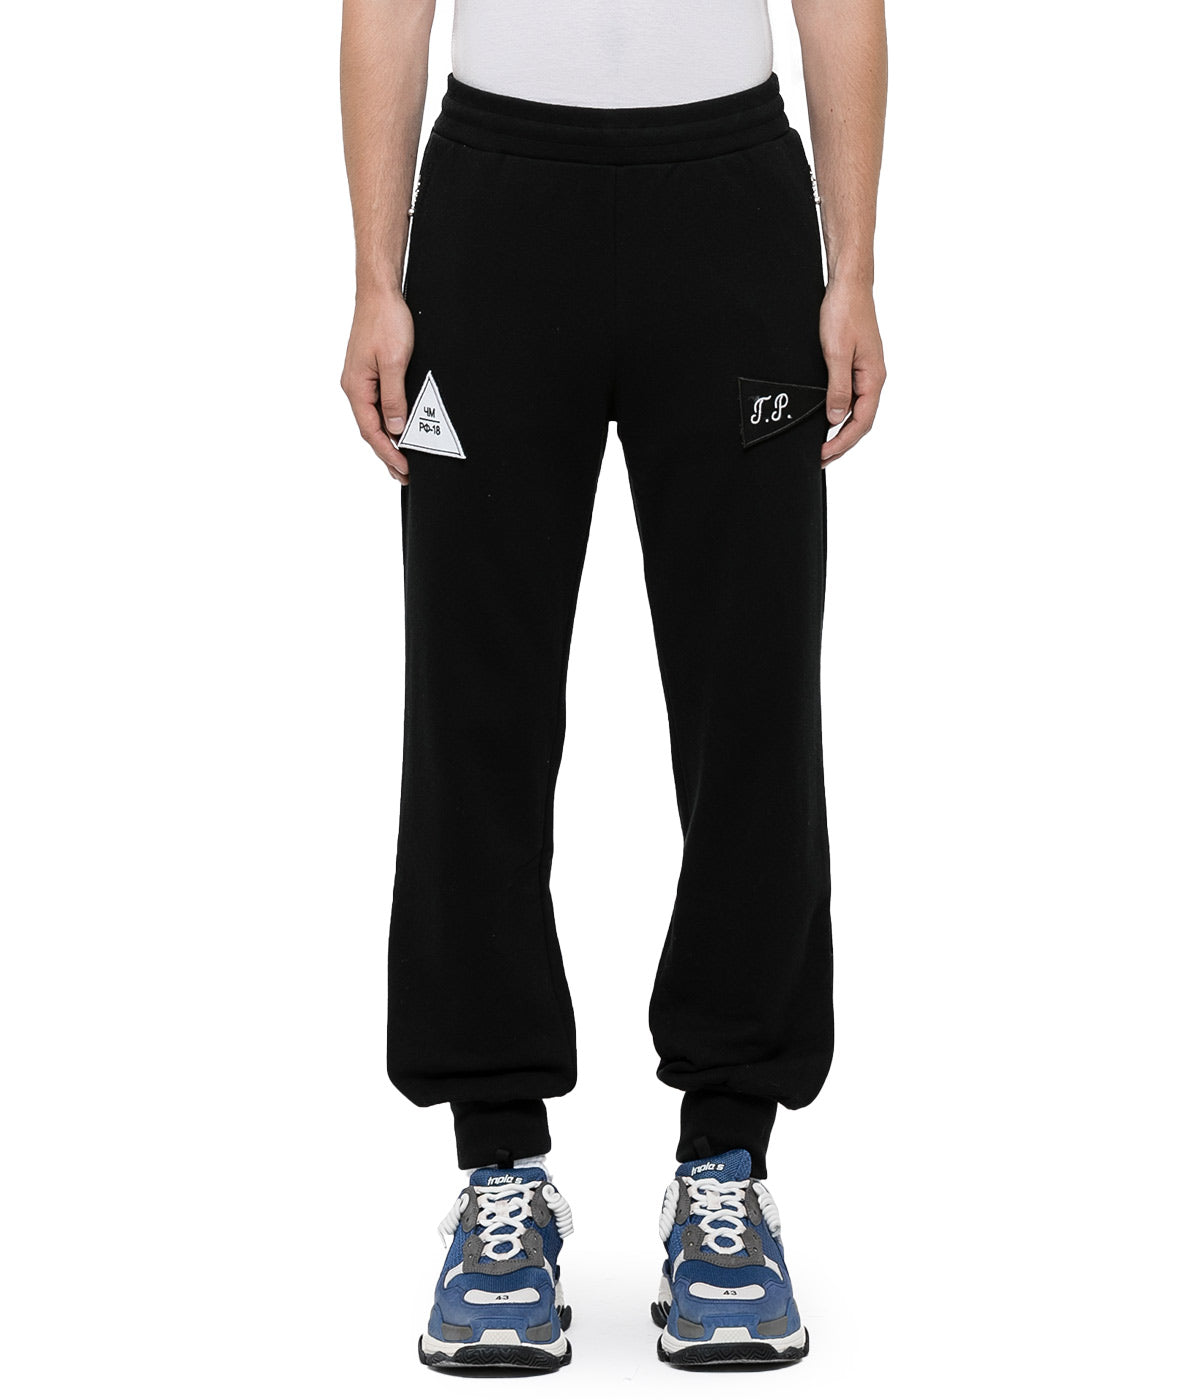 Black Velcro Detail Sweatpants